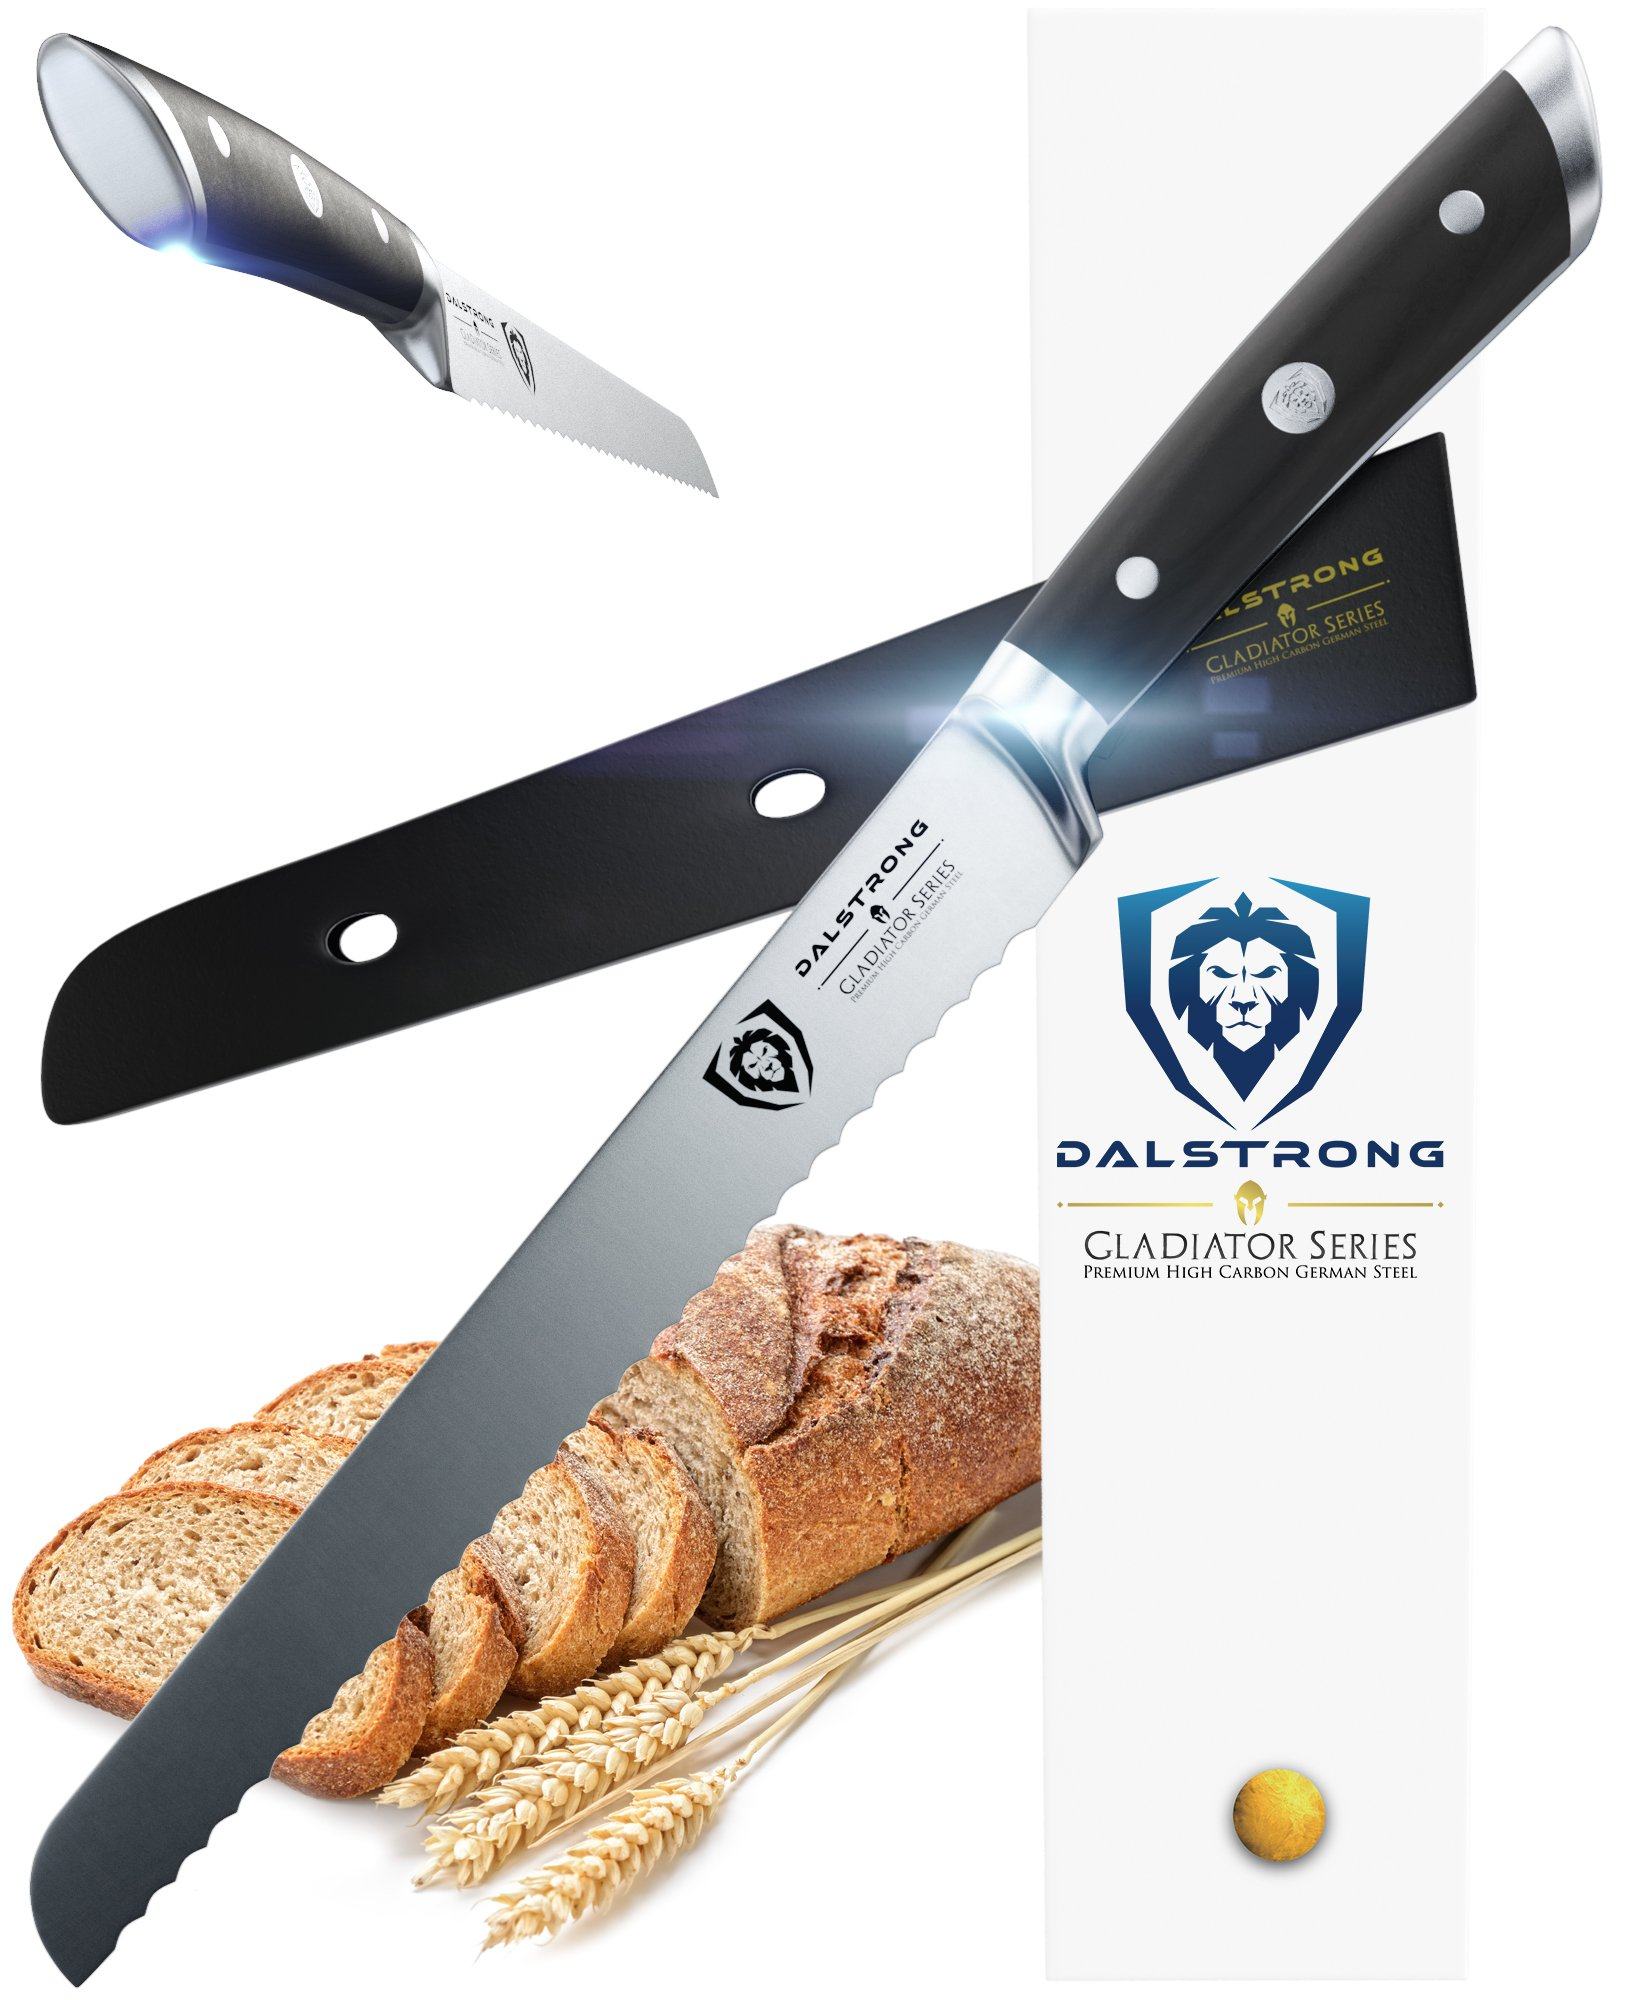 DALSTRONG Bread Knife - Gladiator Series - German HC Steel - 10'' (254 mm) by Dalstrong